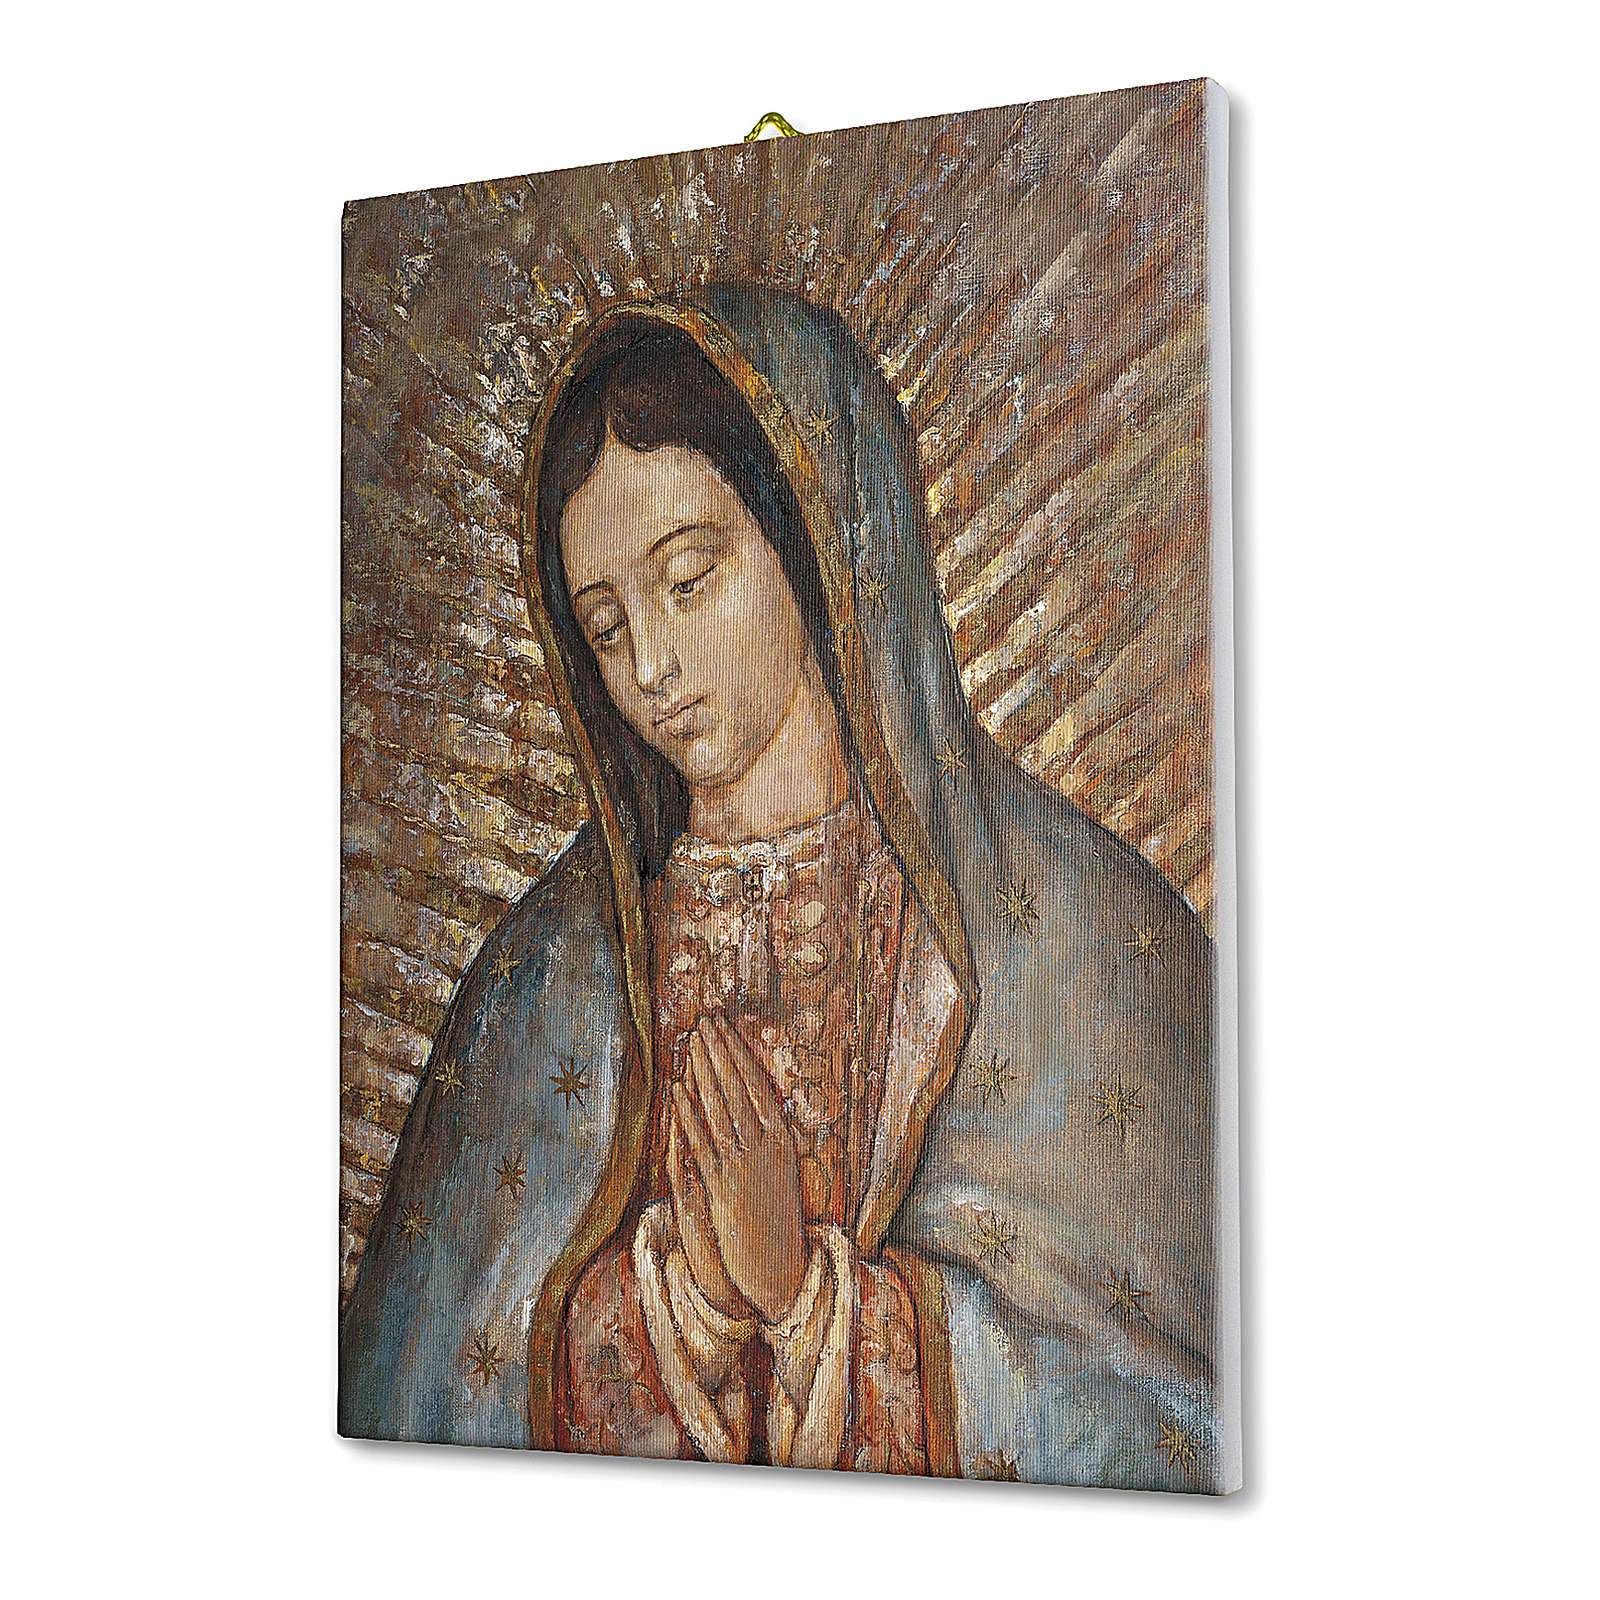 Virgin of Guadalupe print on canvas 40x30 cm 3